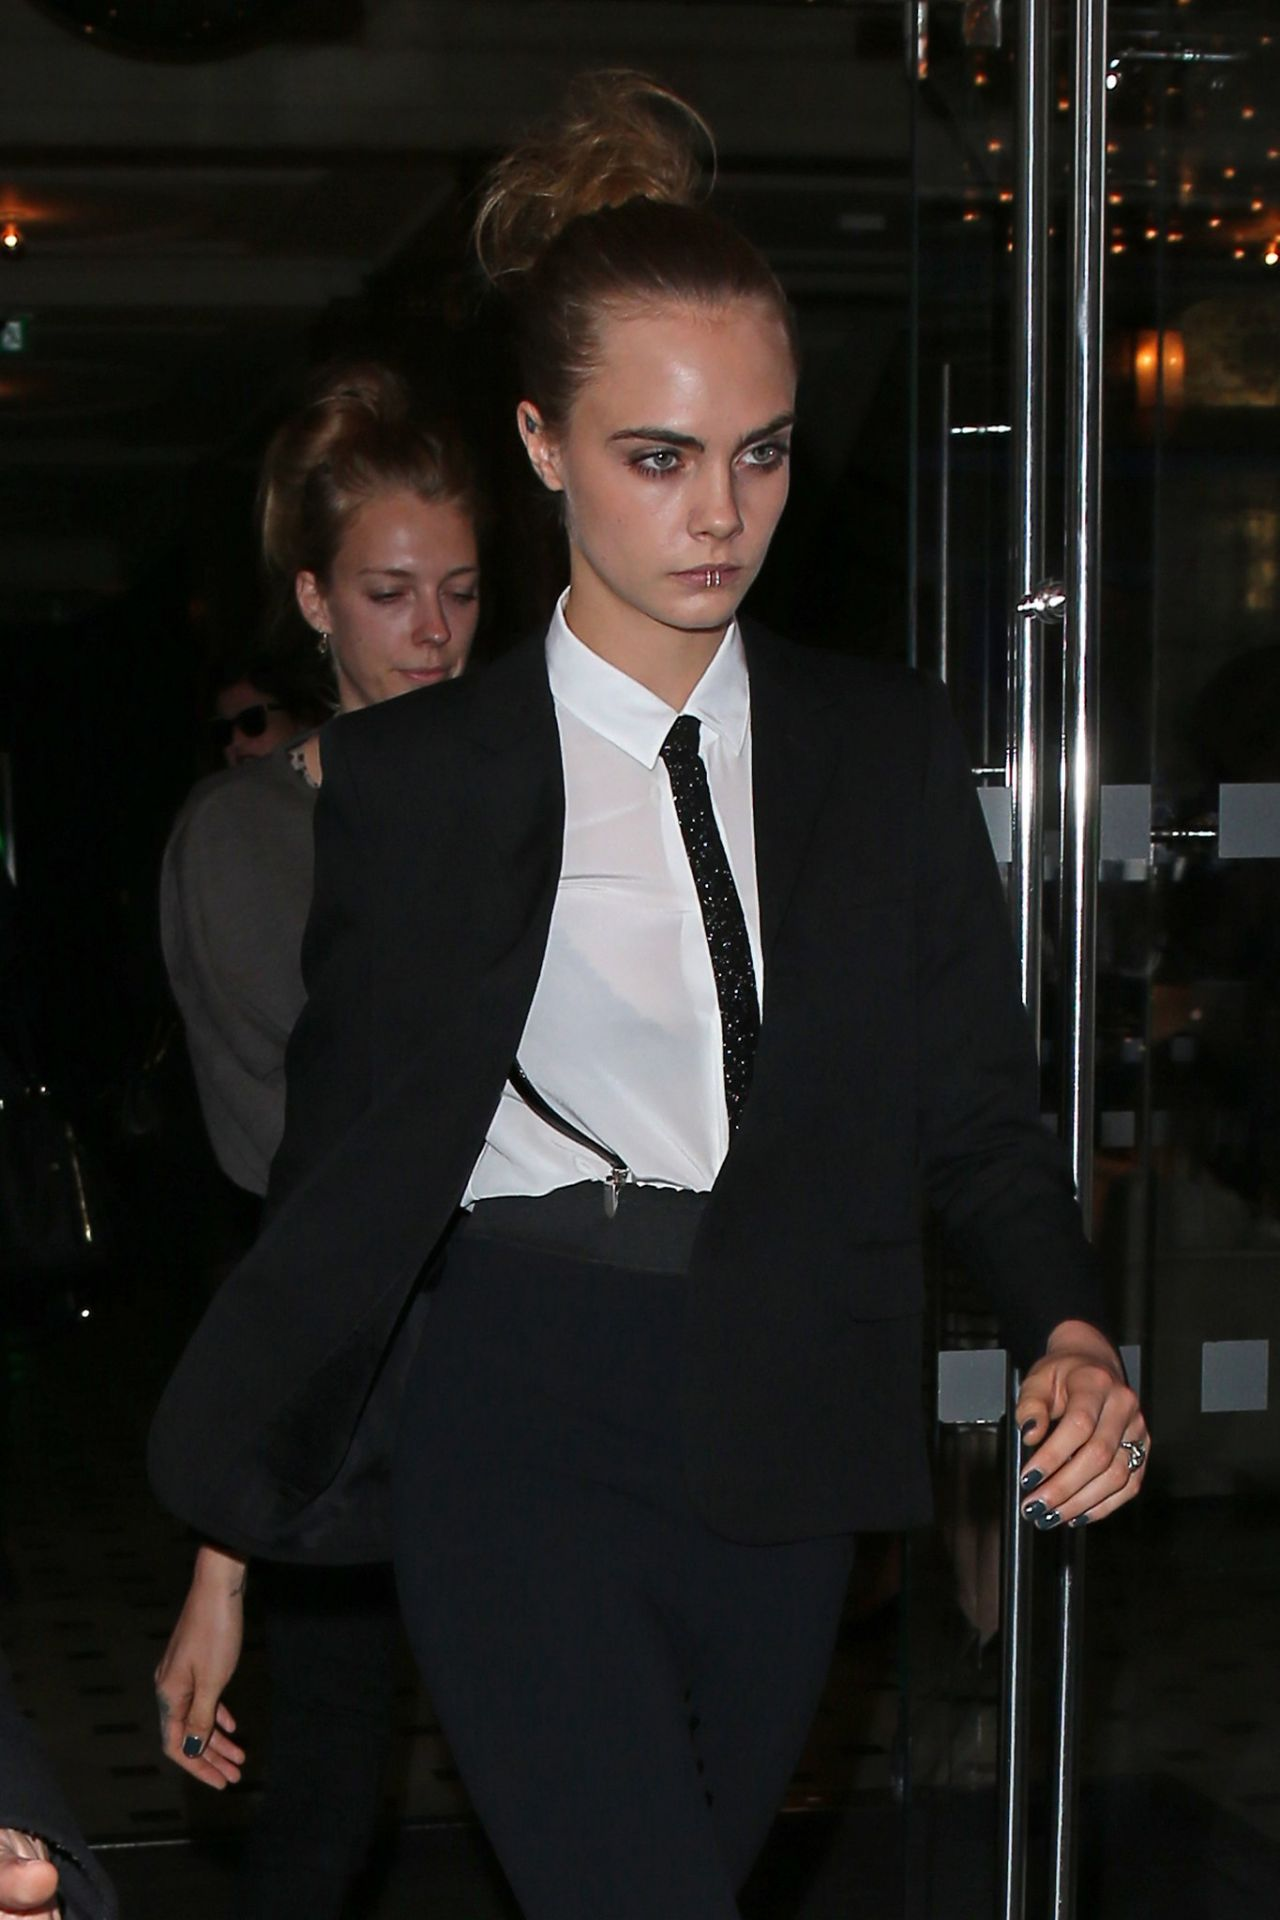 cara-delevingne-leaving-a-hotel-in-london-october-2015_4